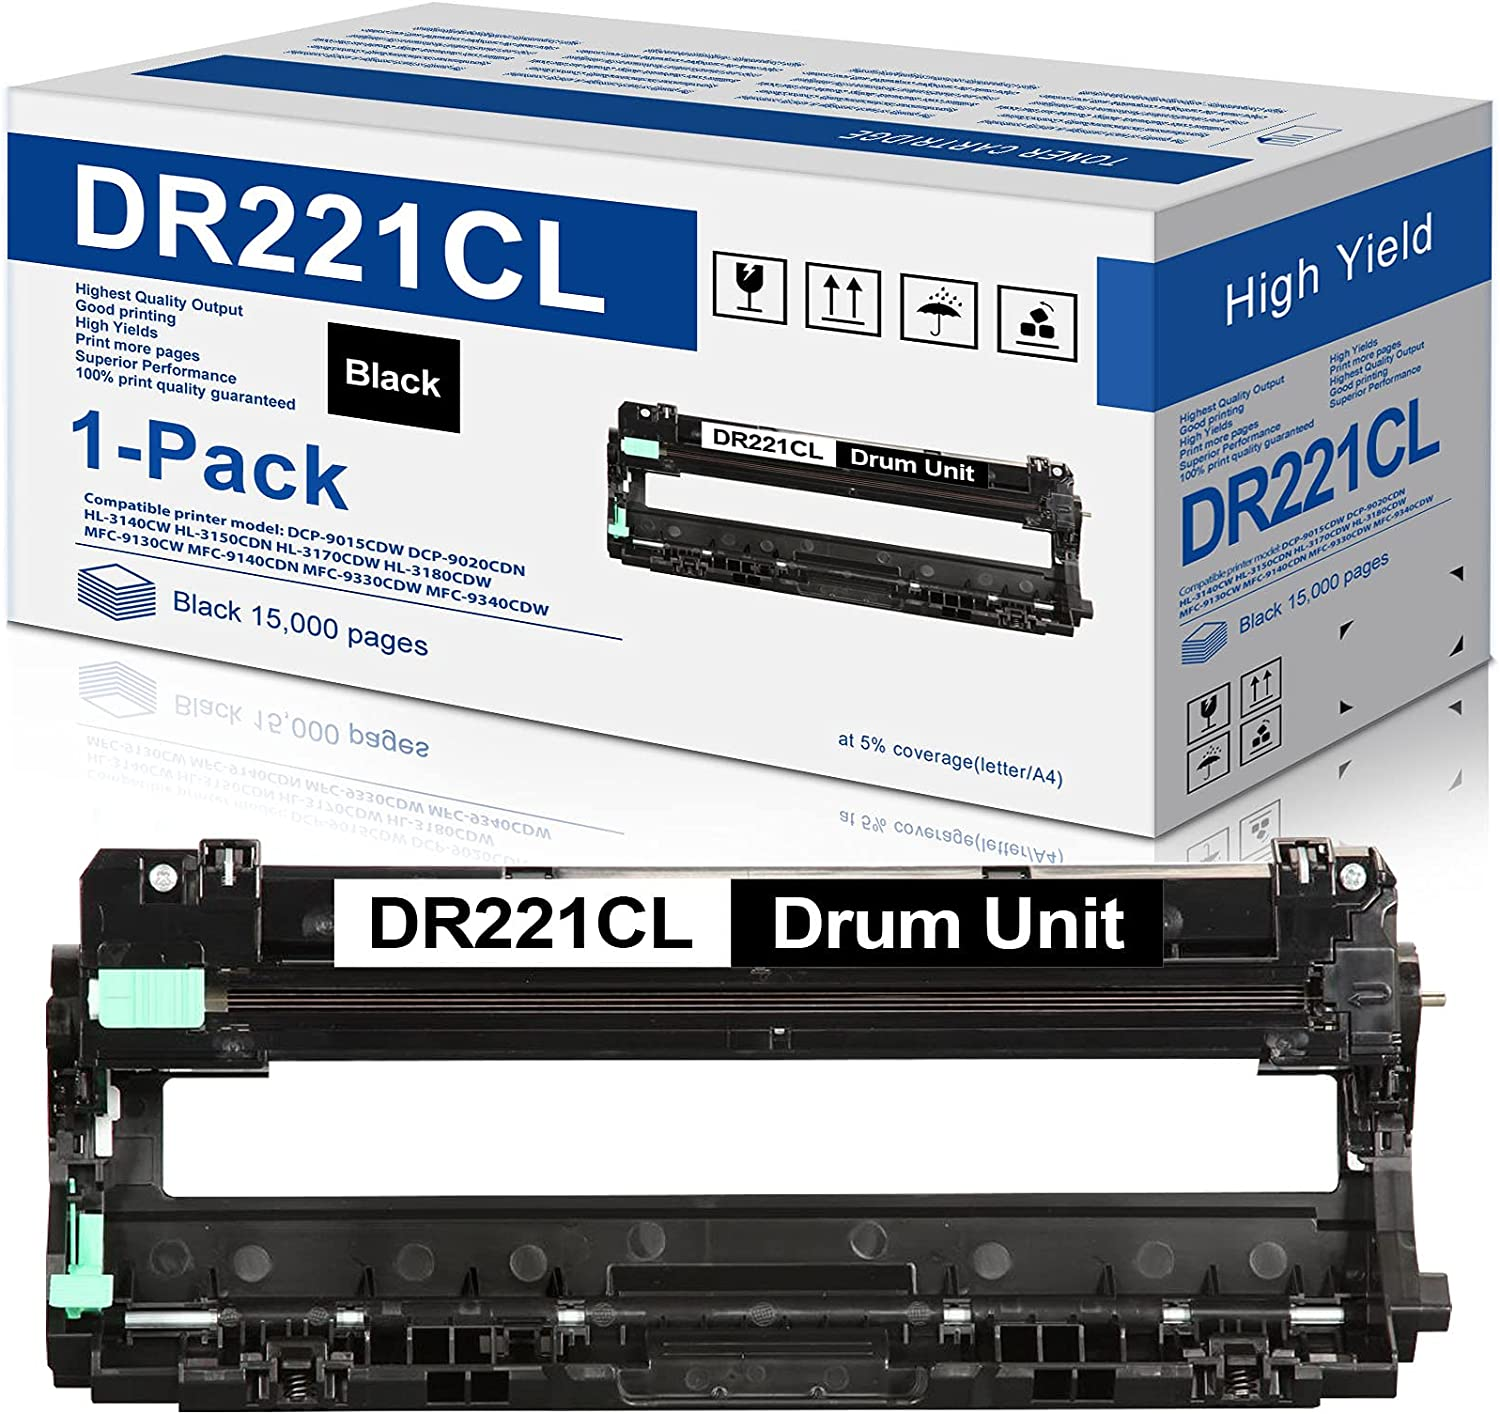 Compatible 1-Pack DR 221CL Black Drum Unit Replacement for Brother DR221CL DR-221CL HL-3170CDW MFC-9330CDW HL-3140CW MFC-9130CW Printer